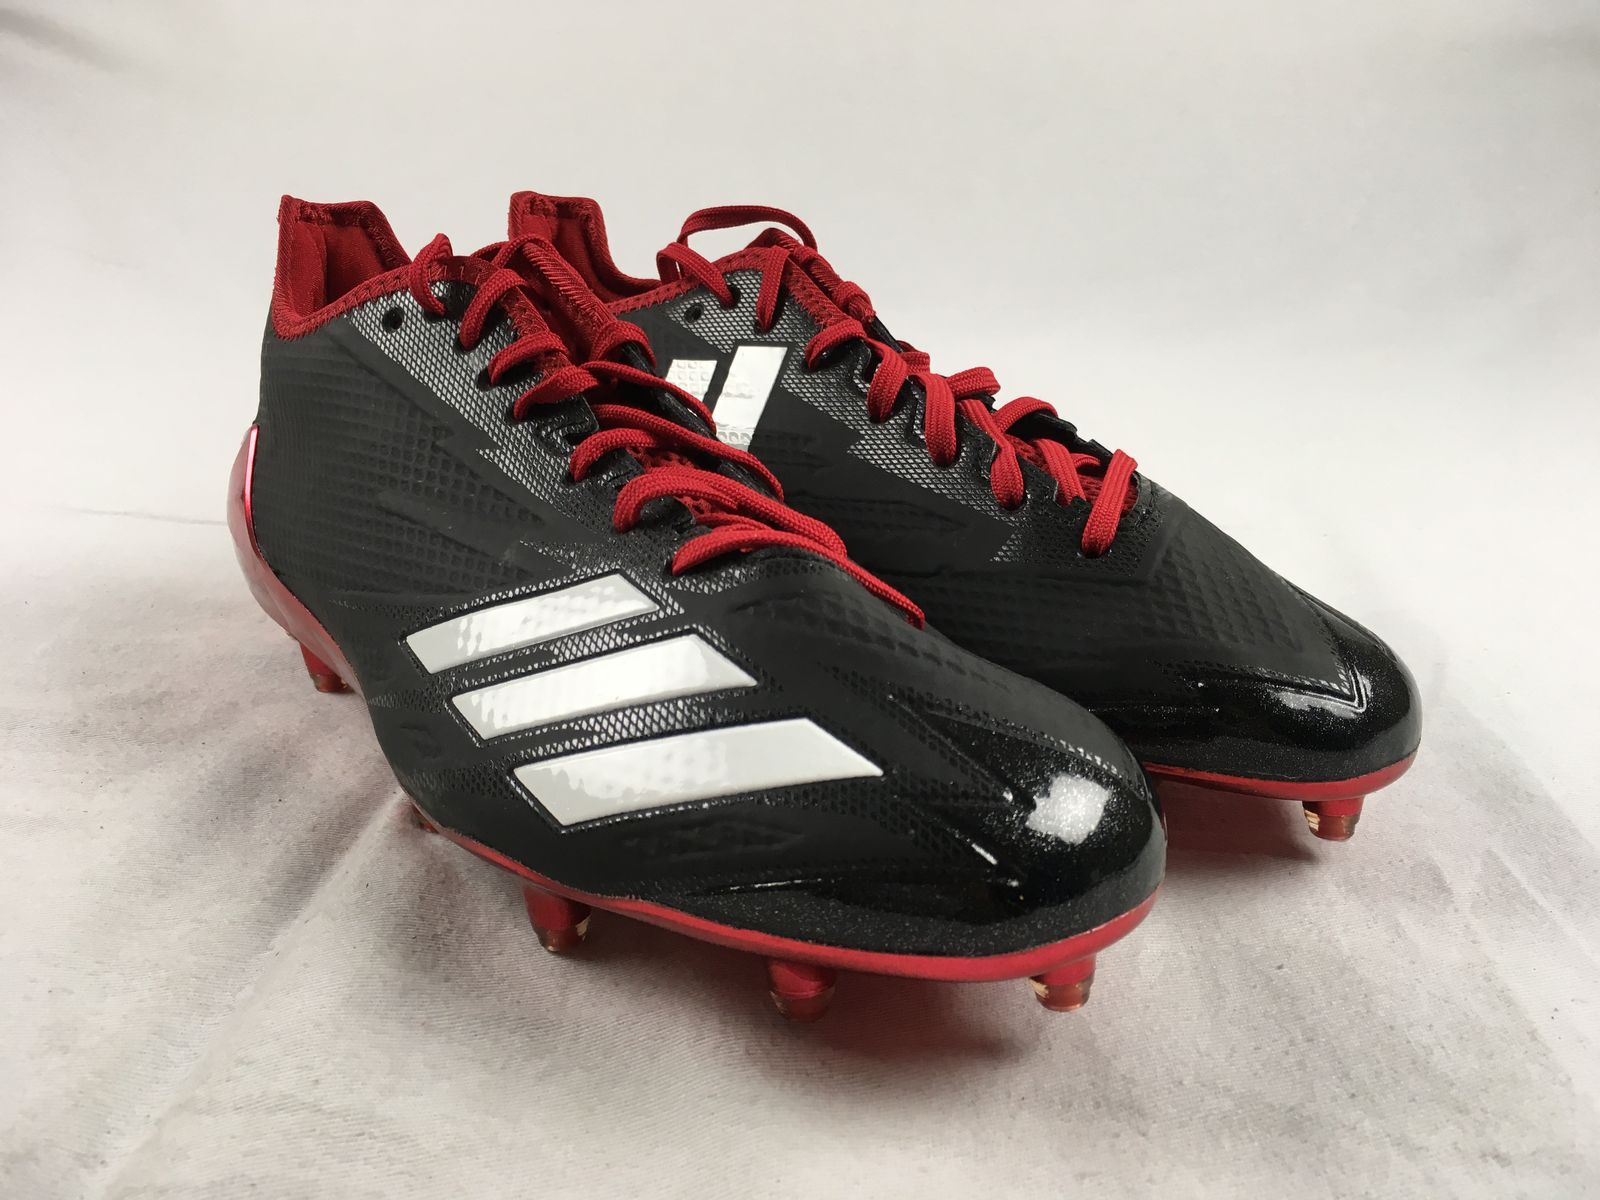 956106210 Details about NEW adidas adizero 5-Star 6.0 Low - Black Red Cleats (Men s  Multiple Sizes)